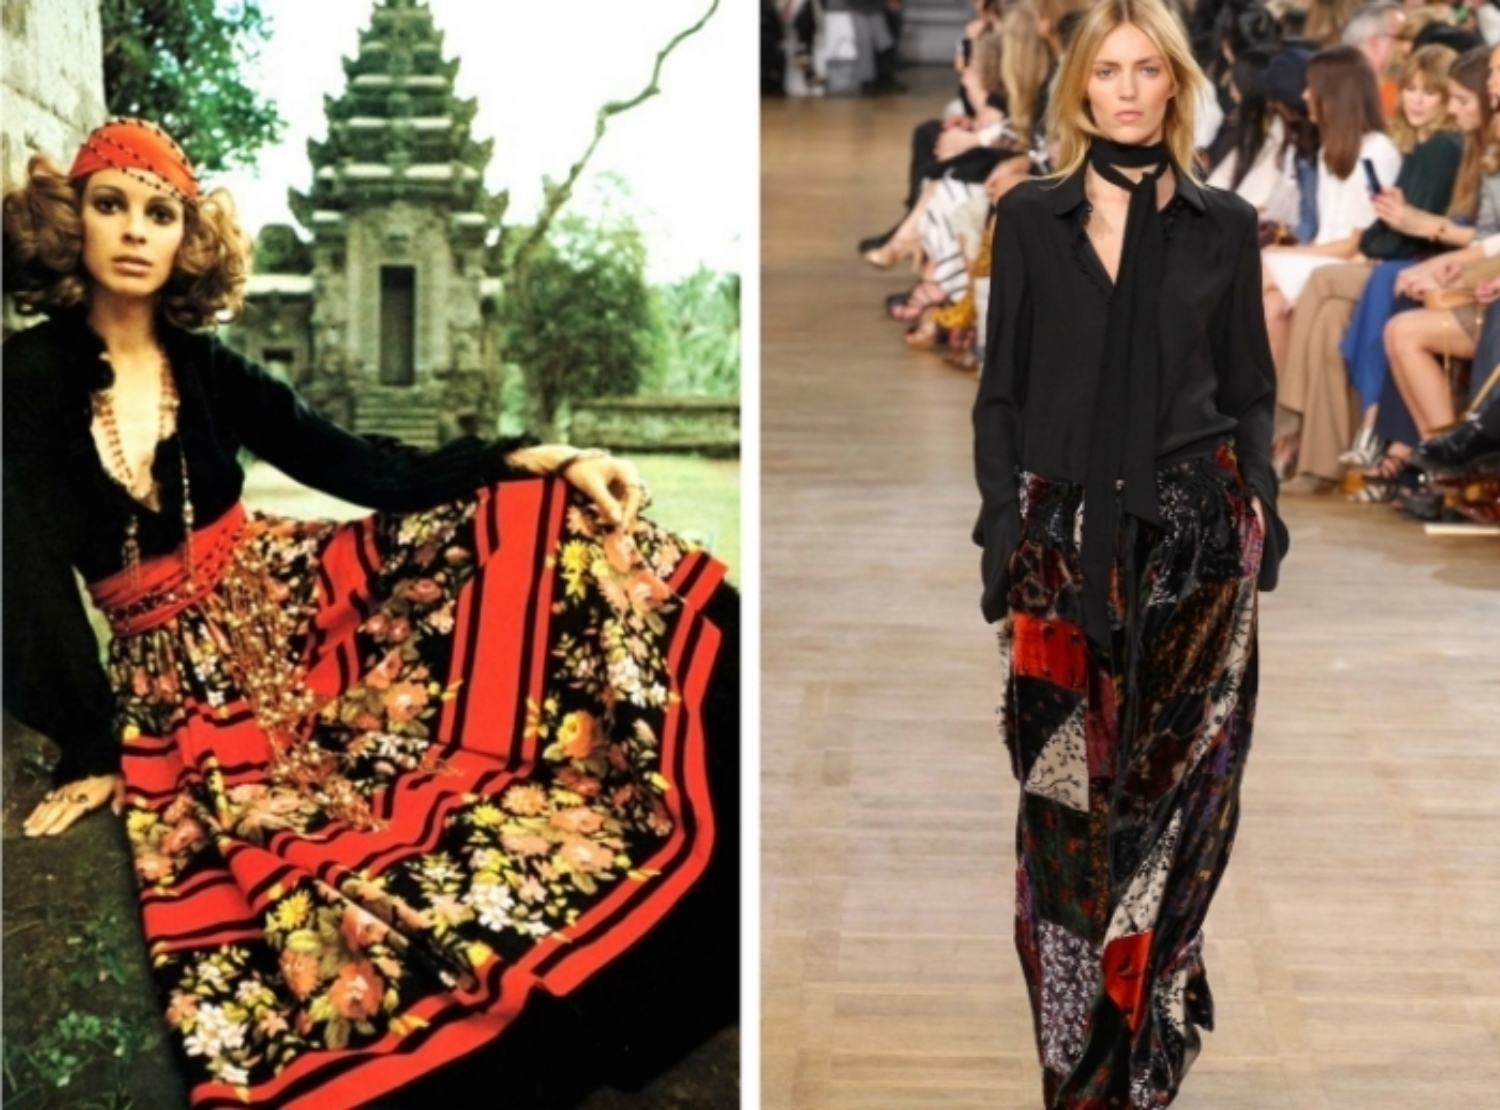 From left to right: P atterned skirt by Norma Tullo featured in Vogue Australia, June - July 1970, and the Chloé collection at Fashion Week, Fall 2015.